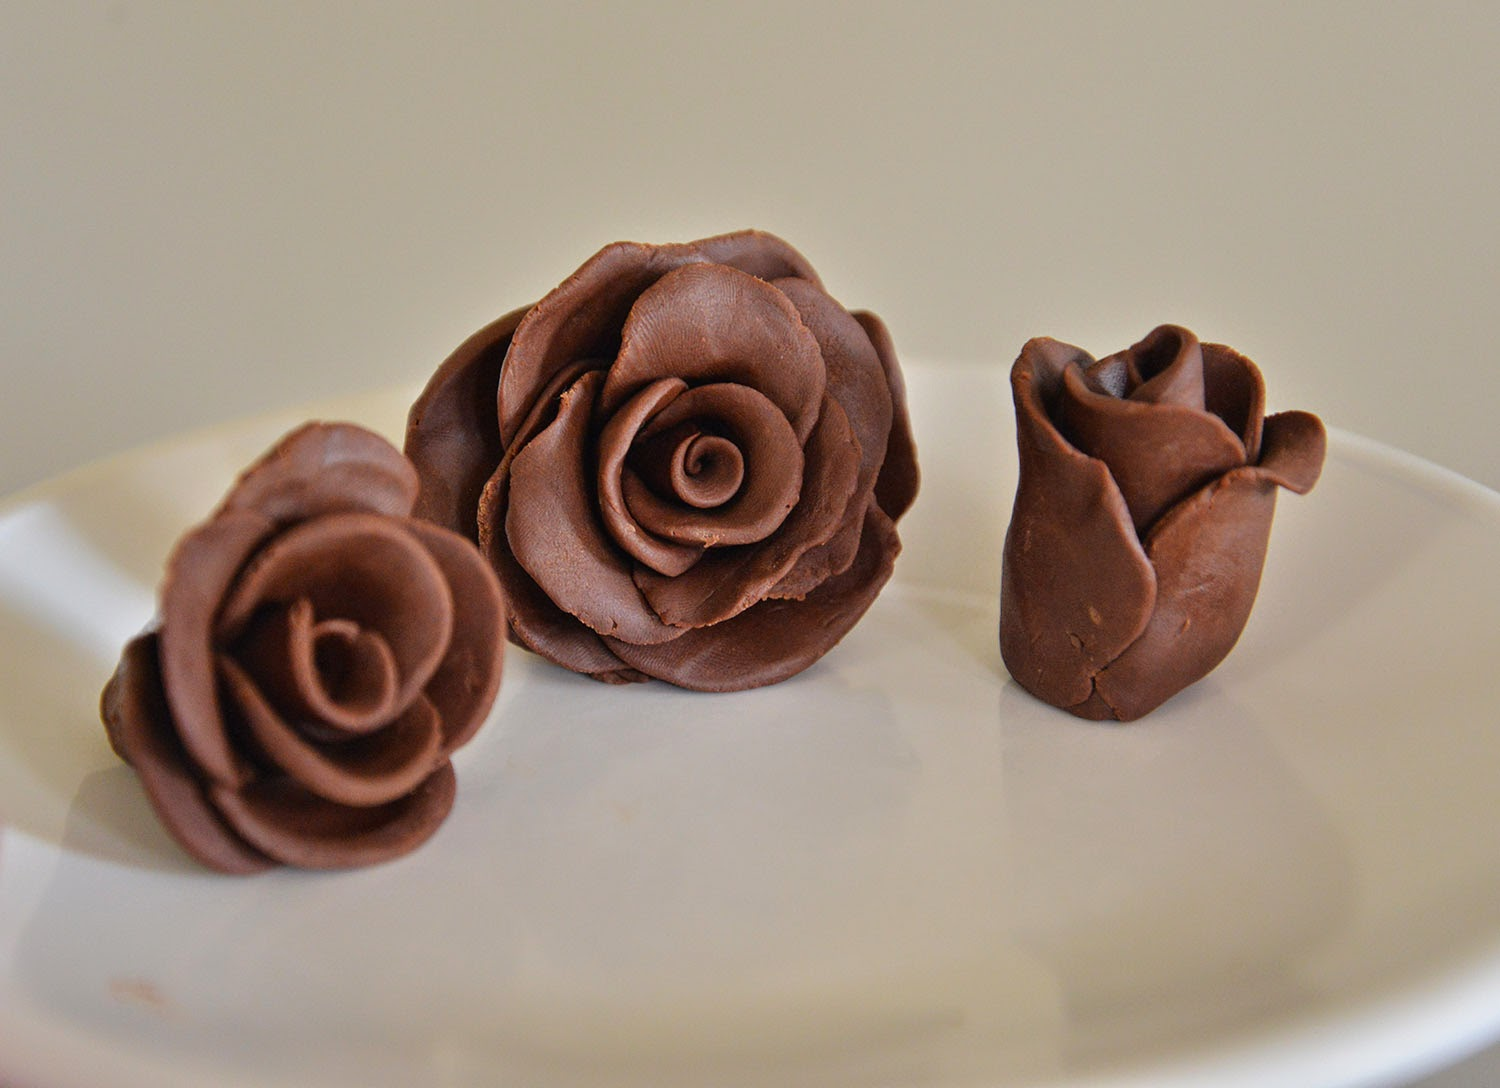 A school of fish: Chocolate Modeling Clay; Chocolate Roses